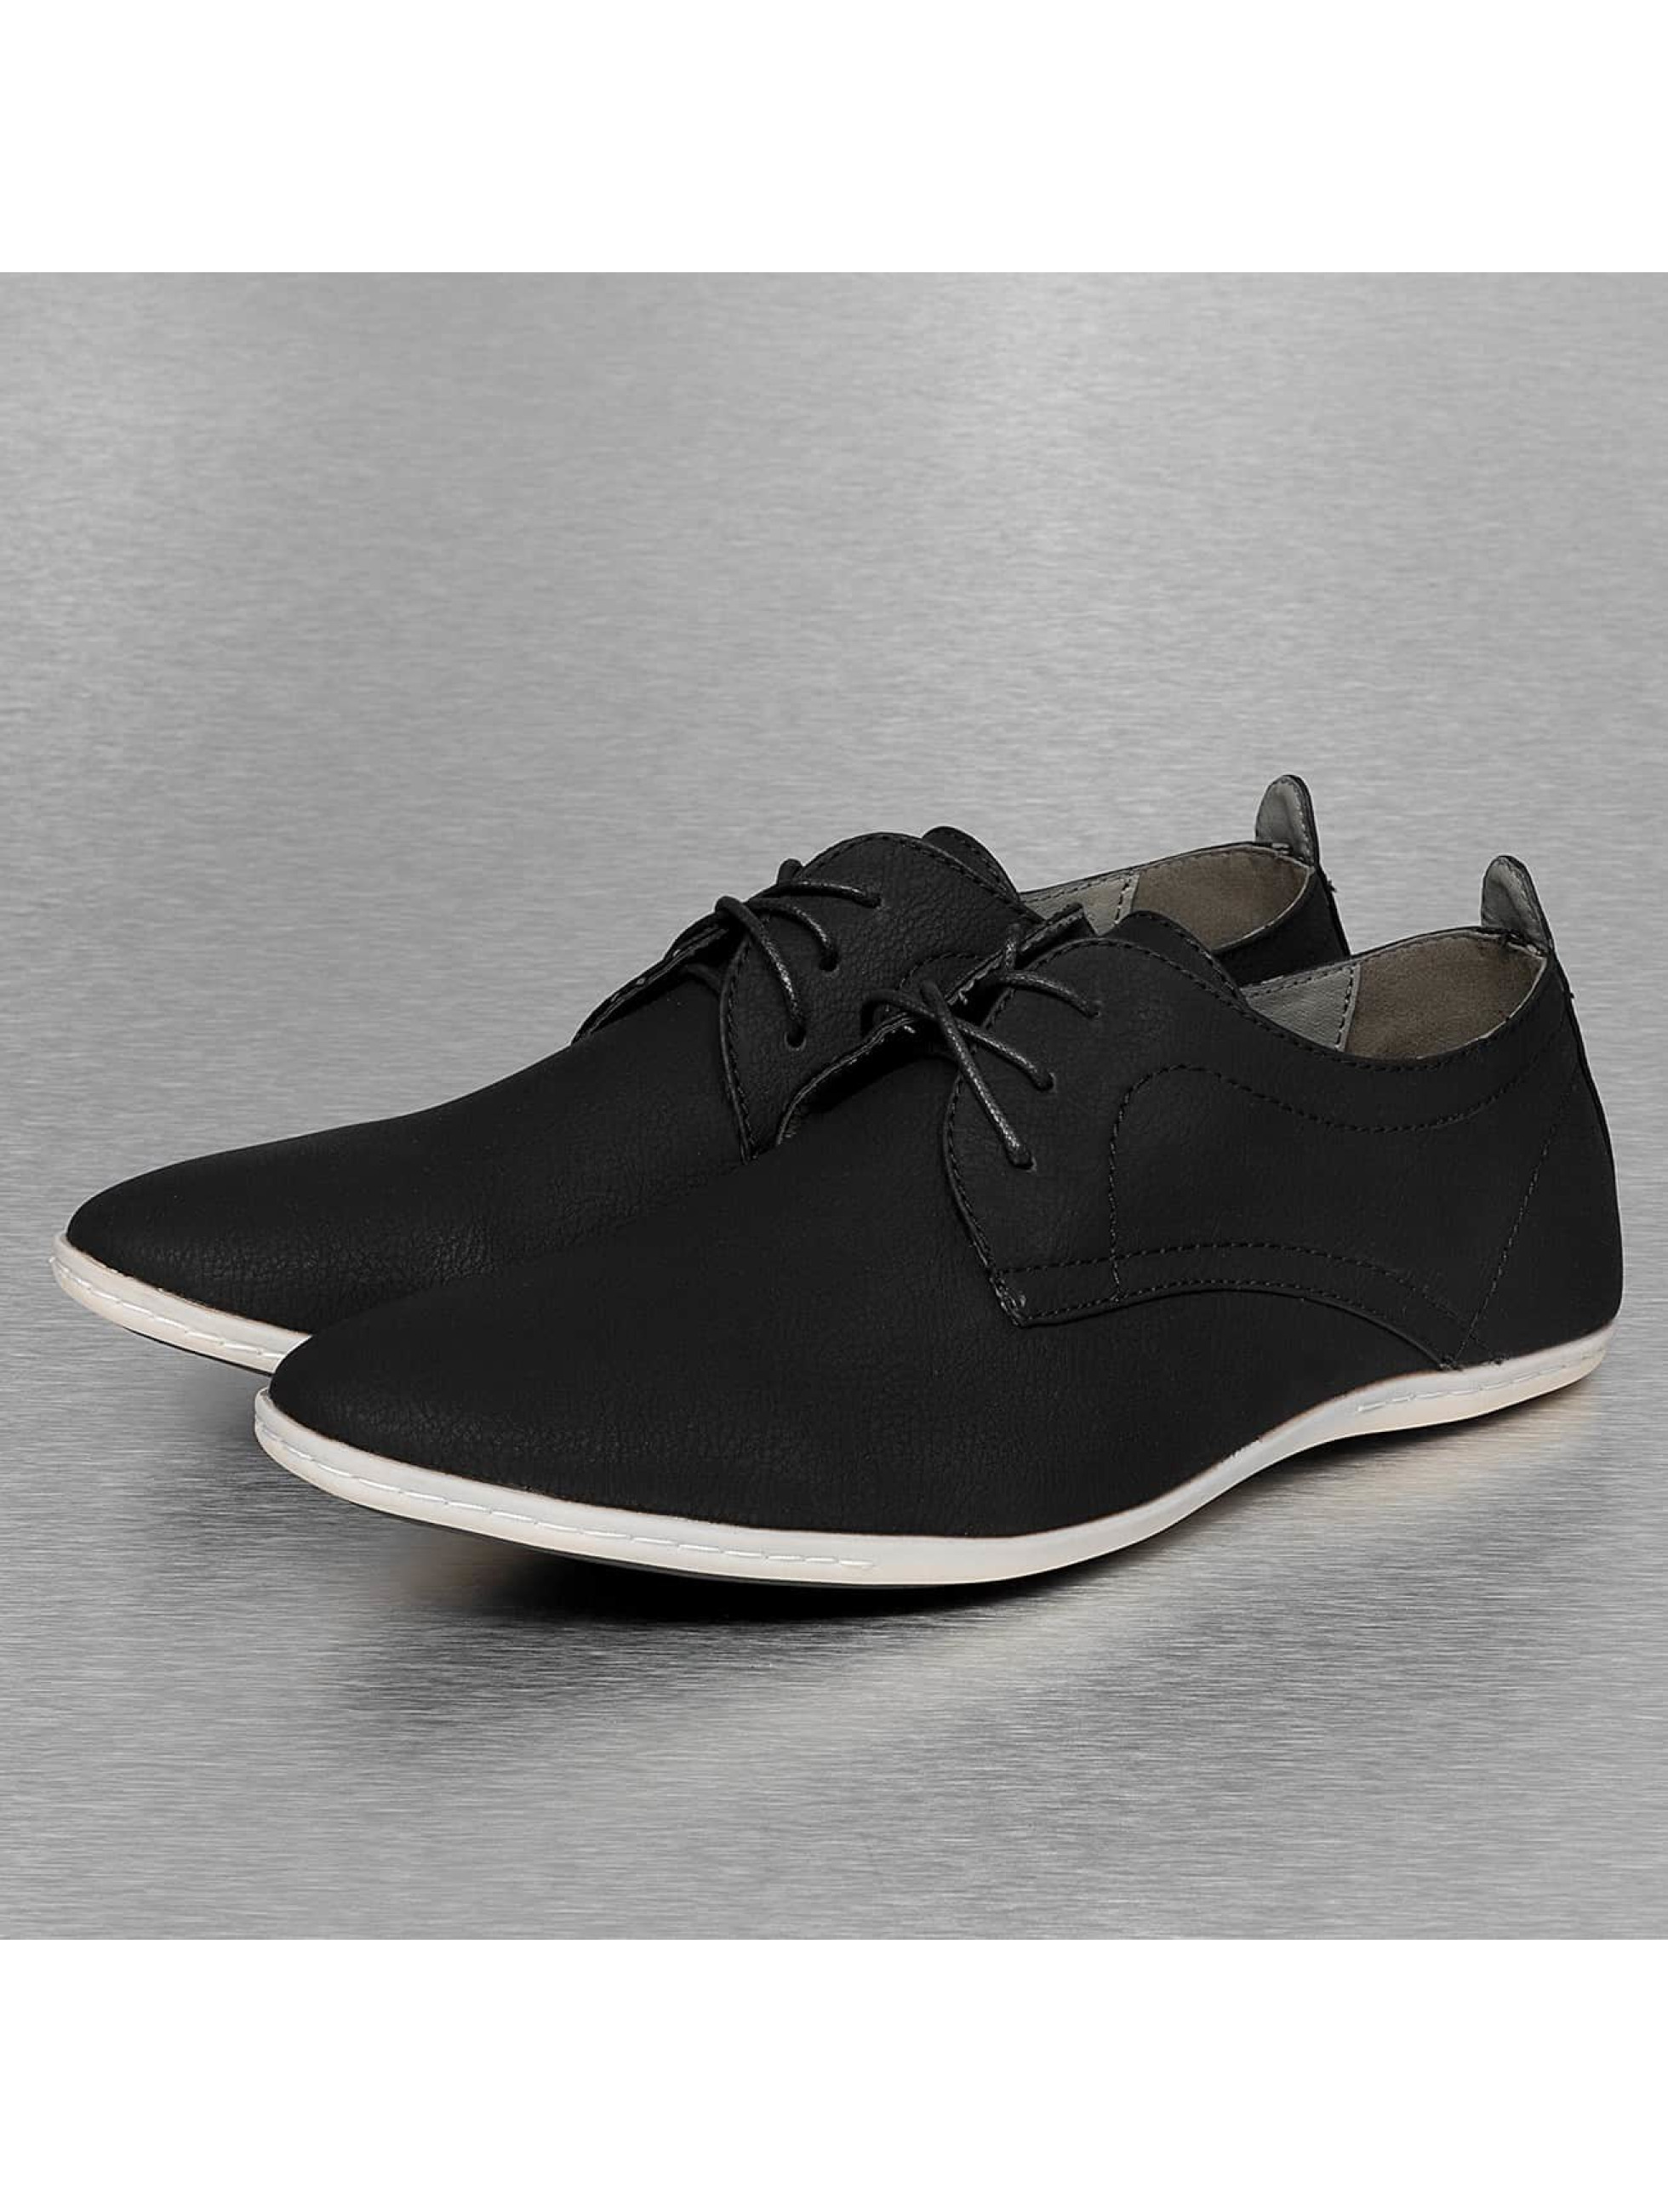 New York Style Sneakers Style black